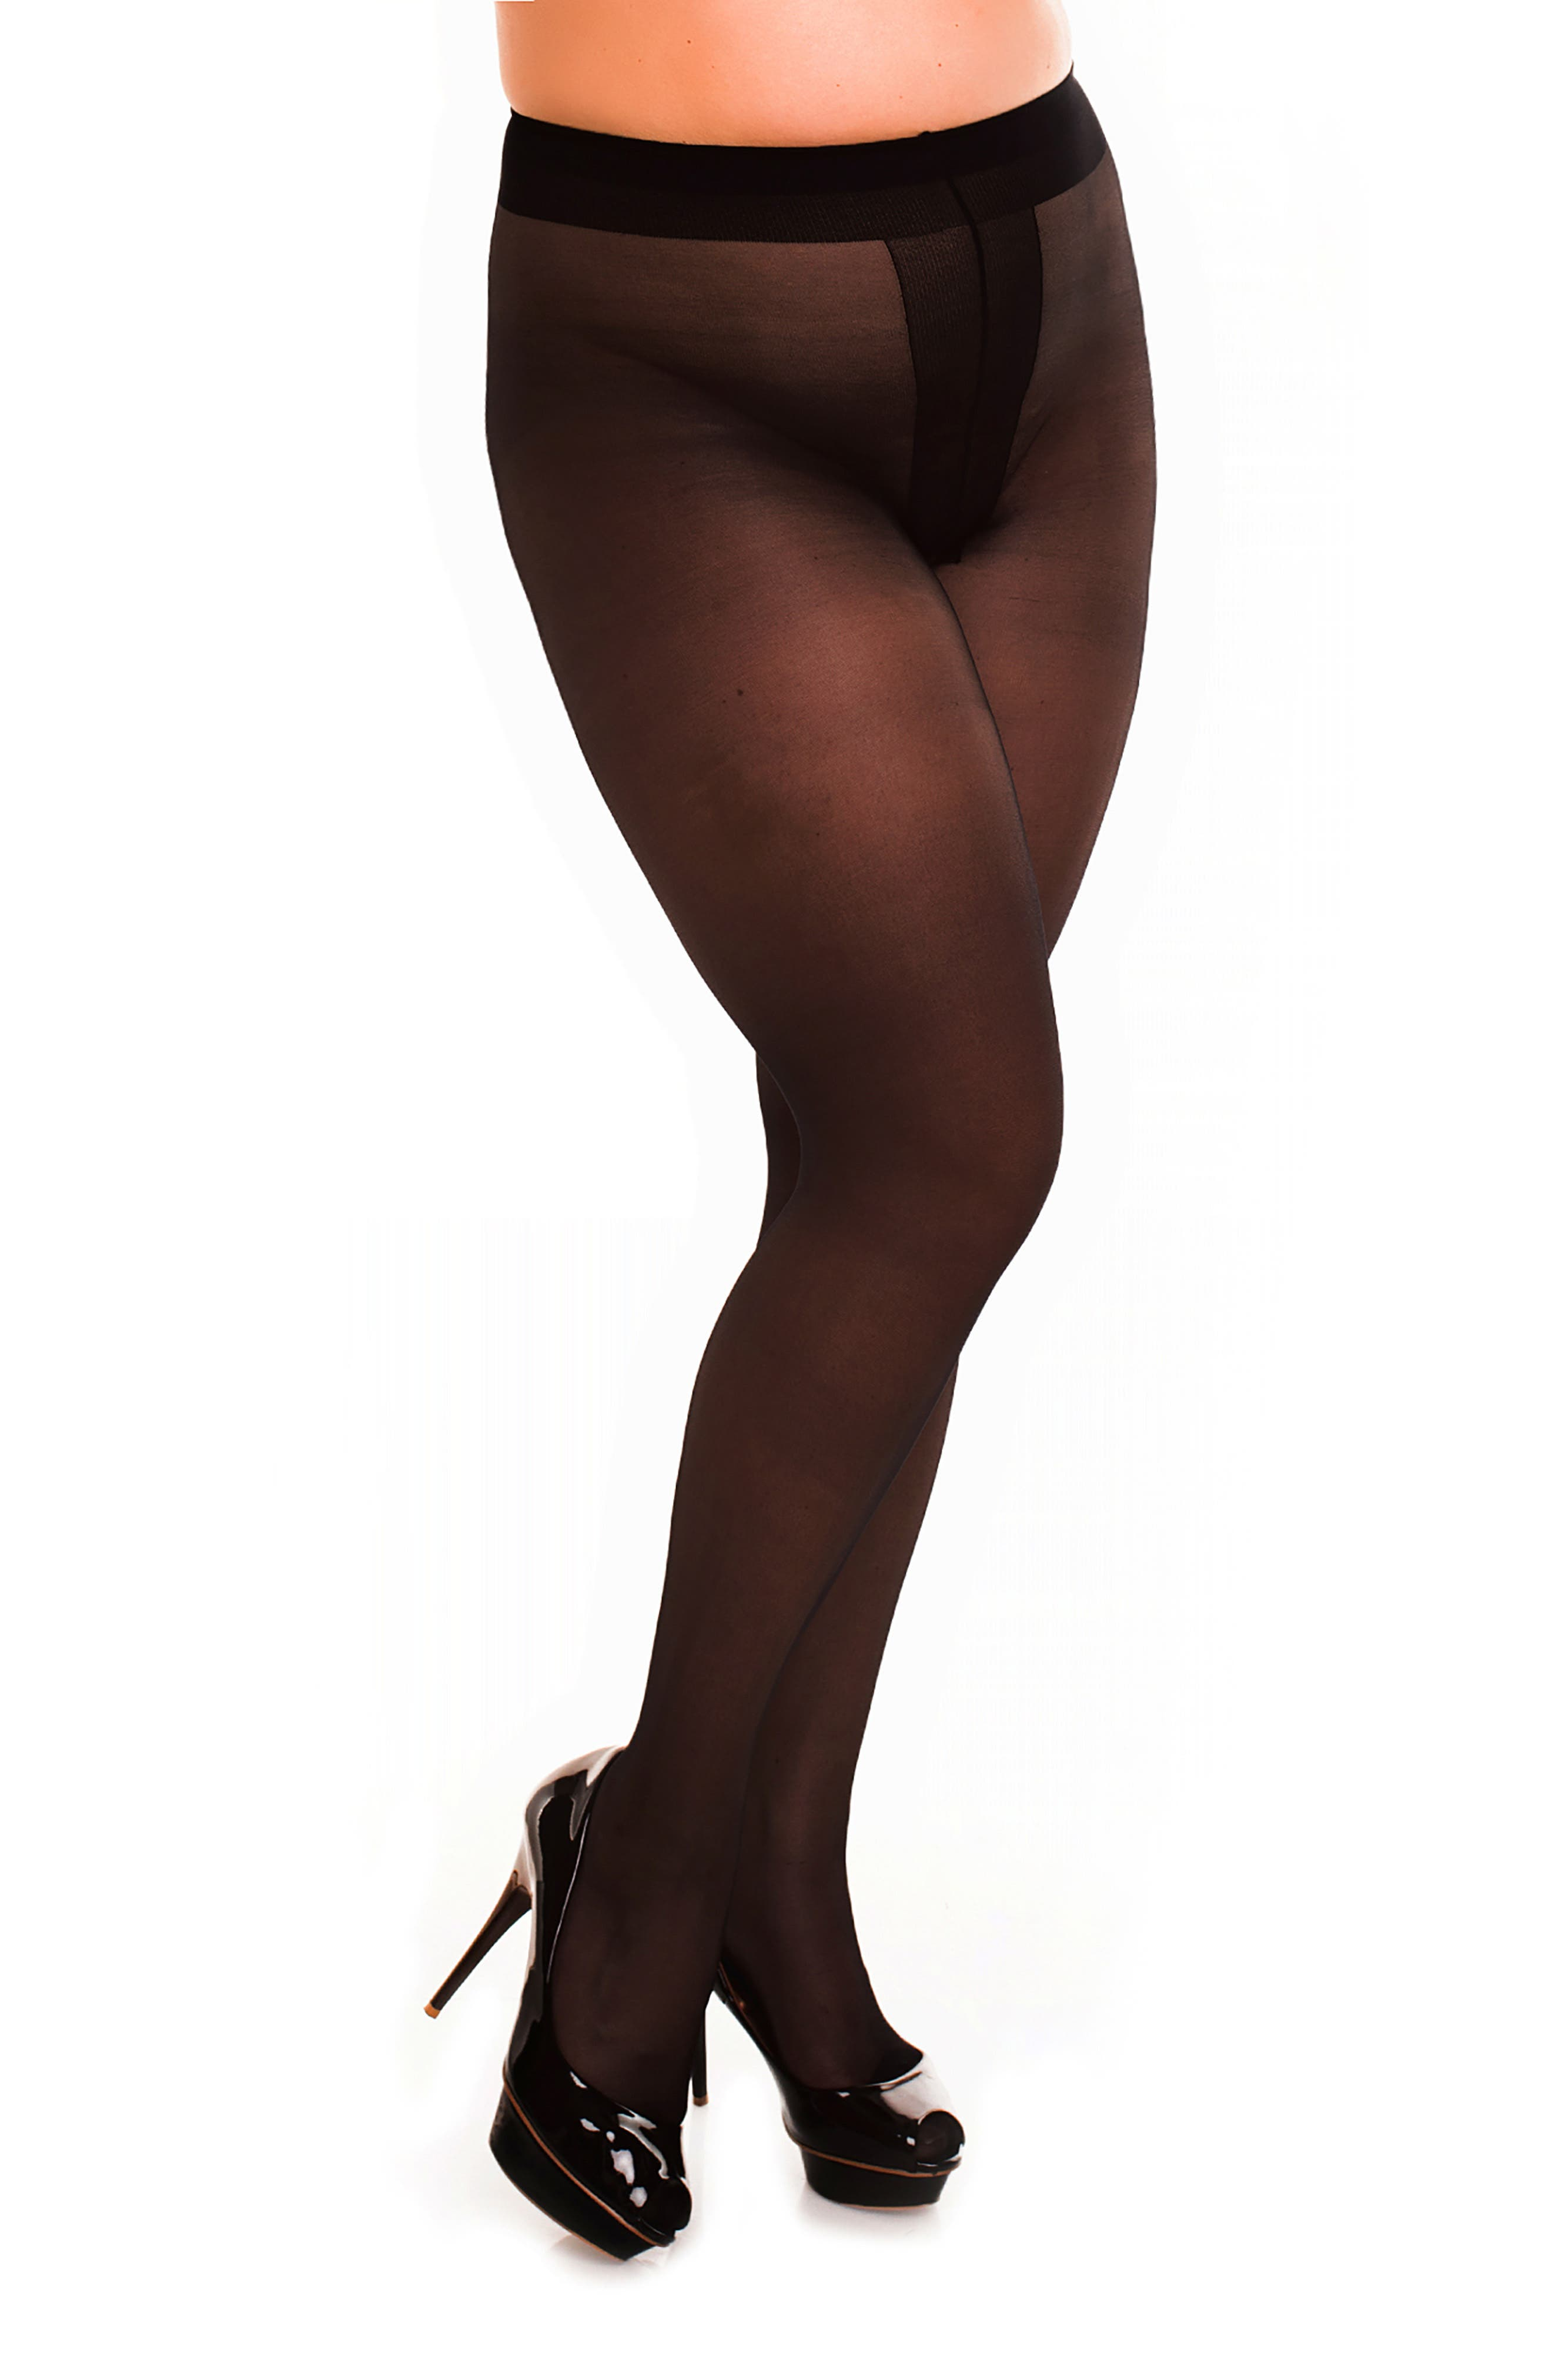 Glamory Hosiery Ouvert20 Tights